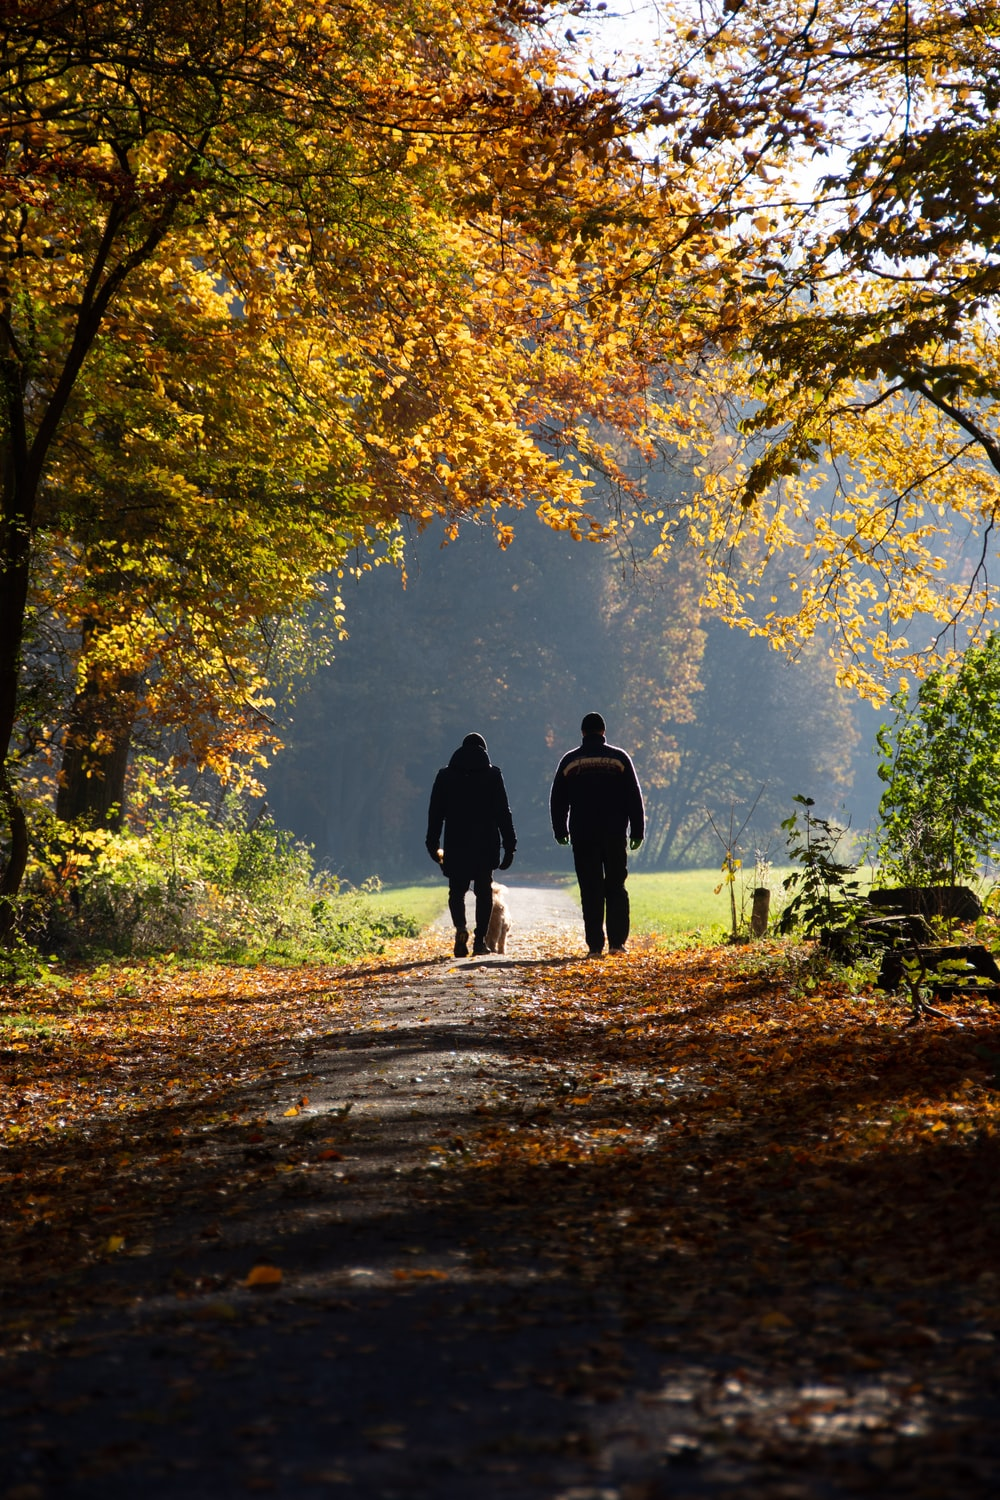 two persons on pathway between trees